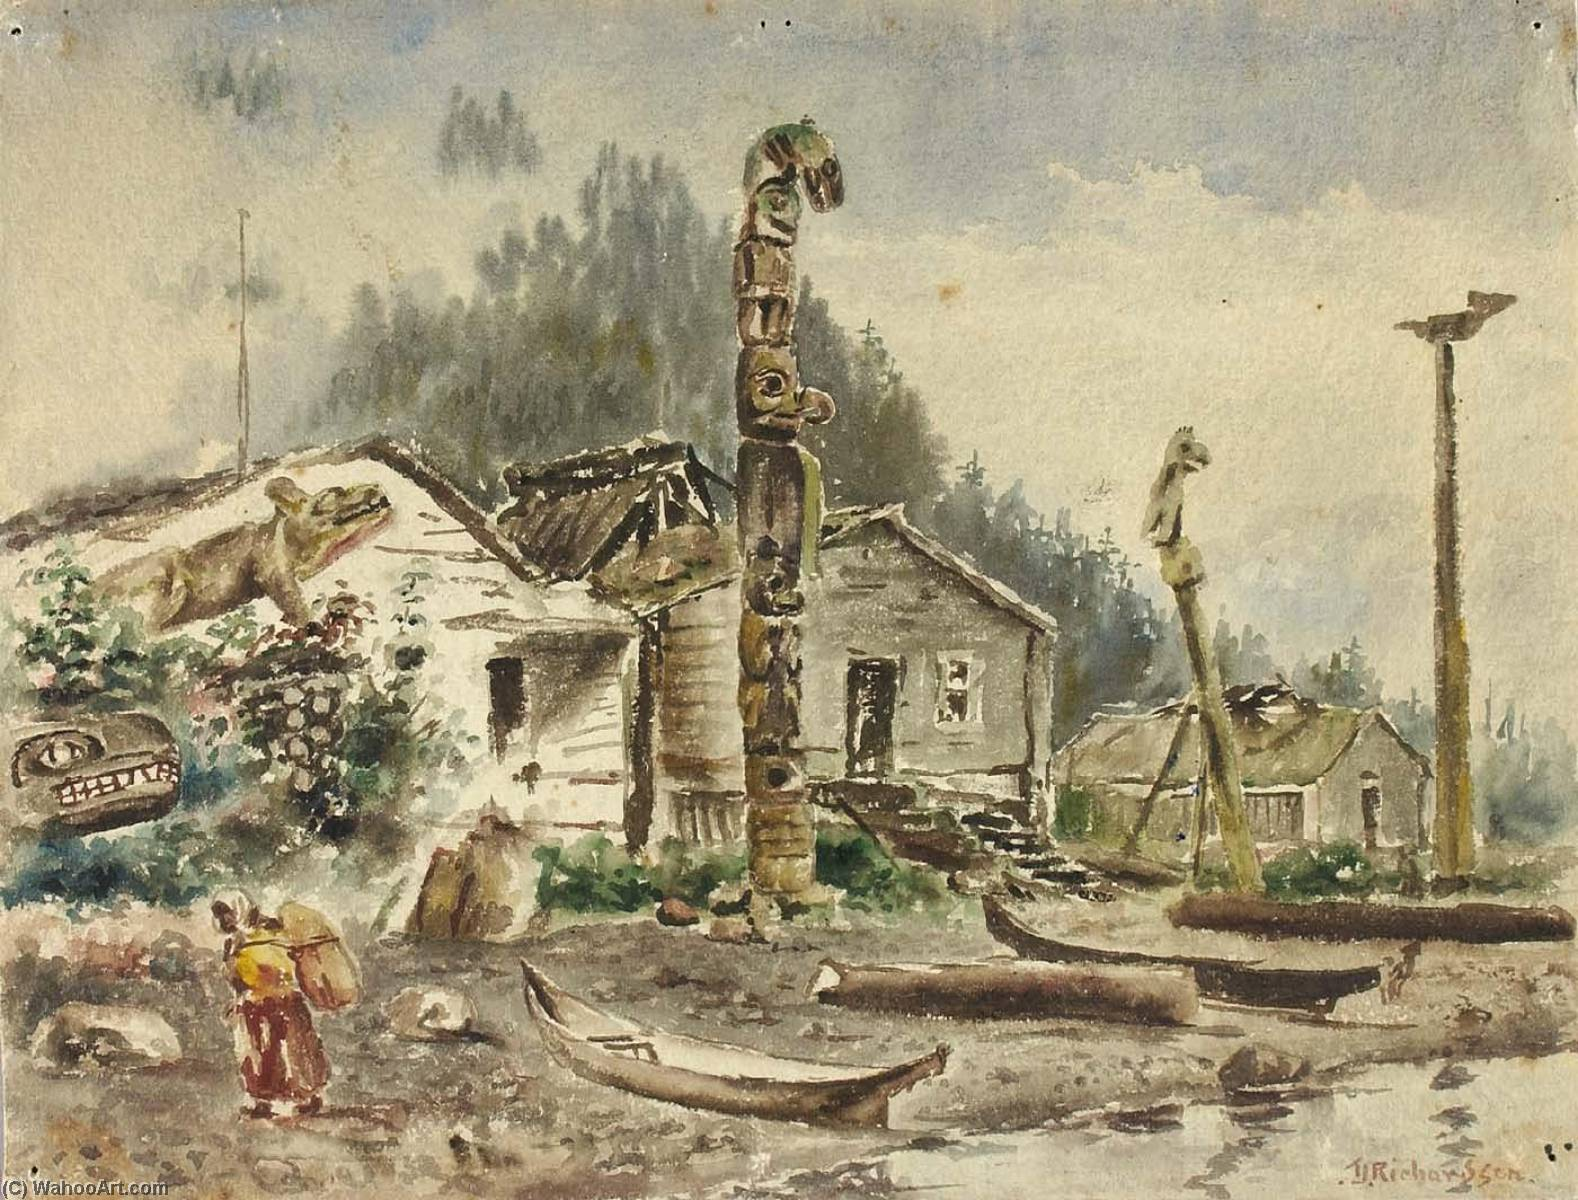 View of Wrangell, Alaska, in 1884, 1884 by Theodore J. Richardson | Art Reproductions Theodore J. Richardson | WahooArt.com